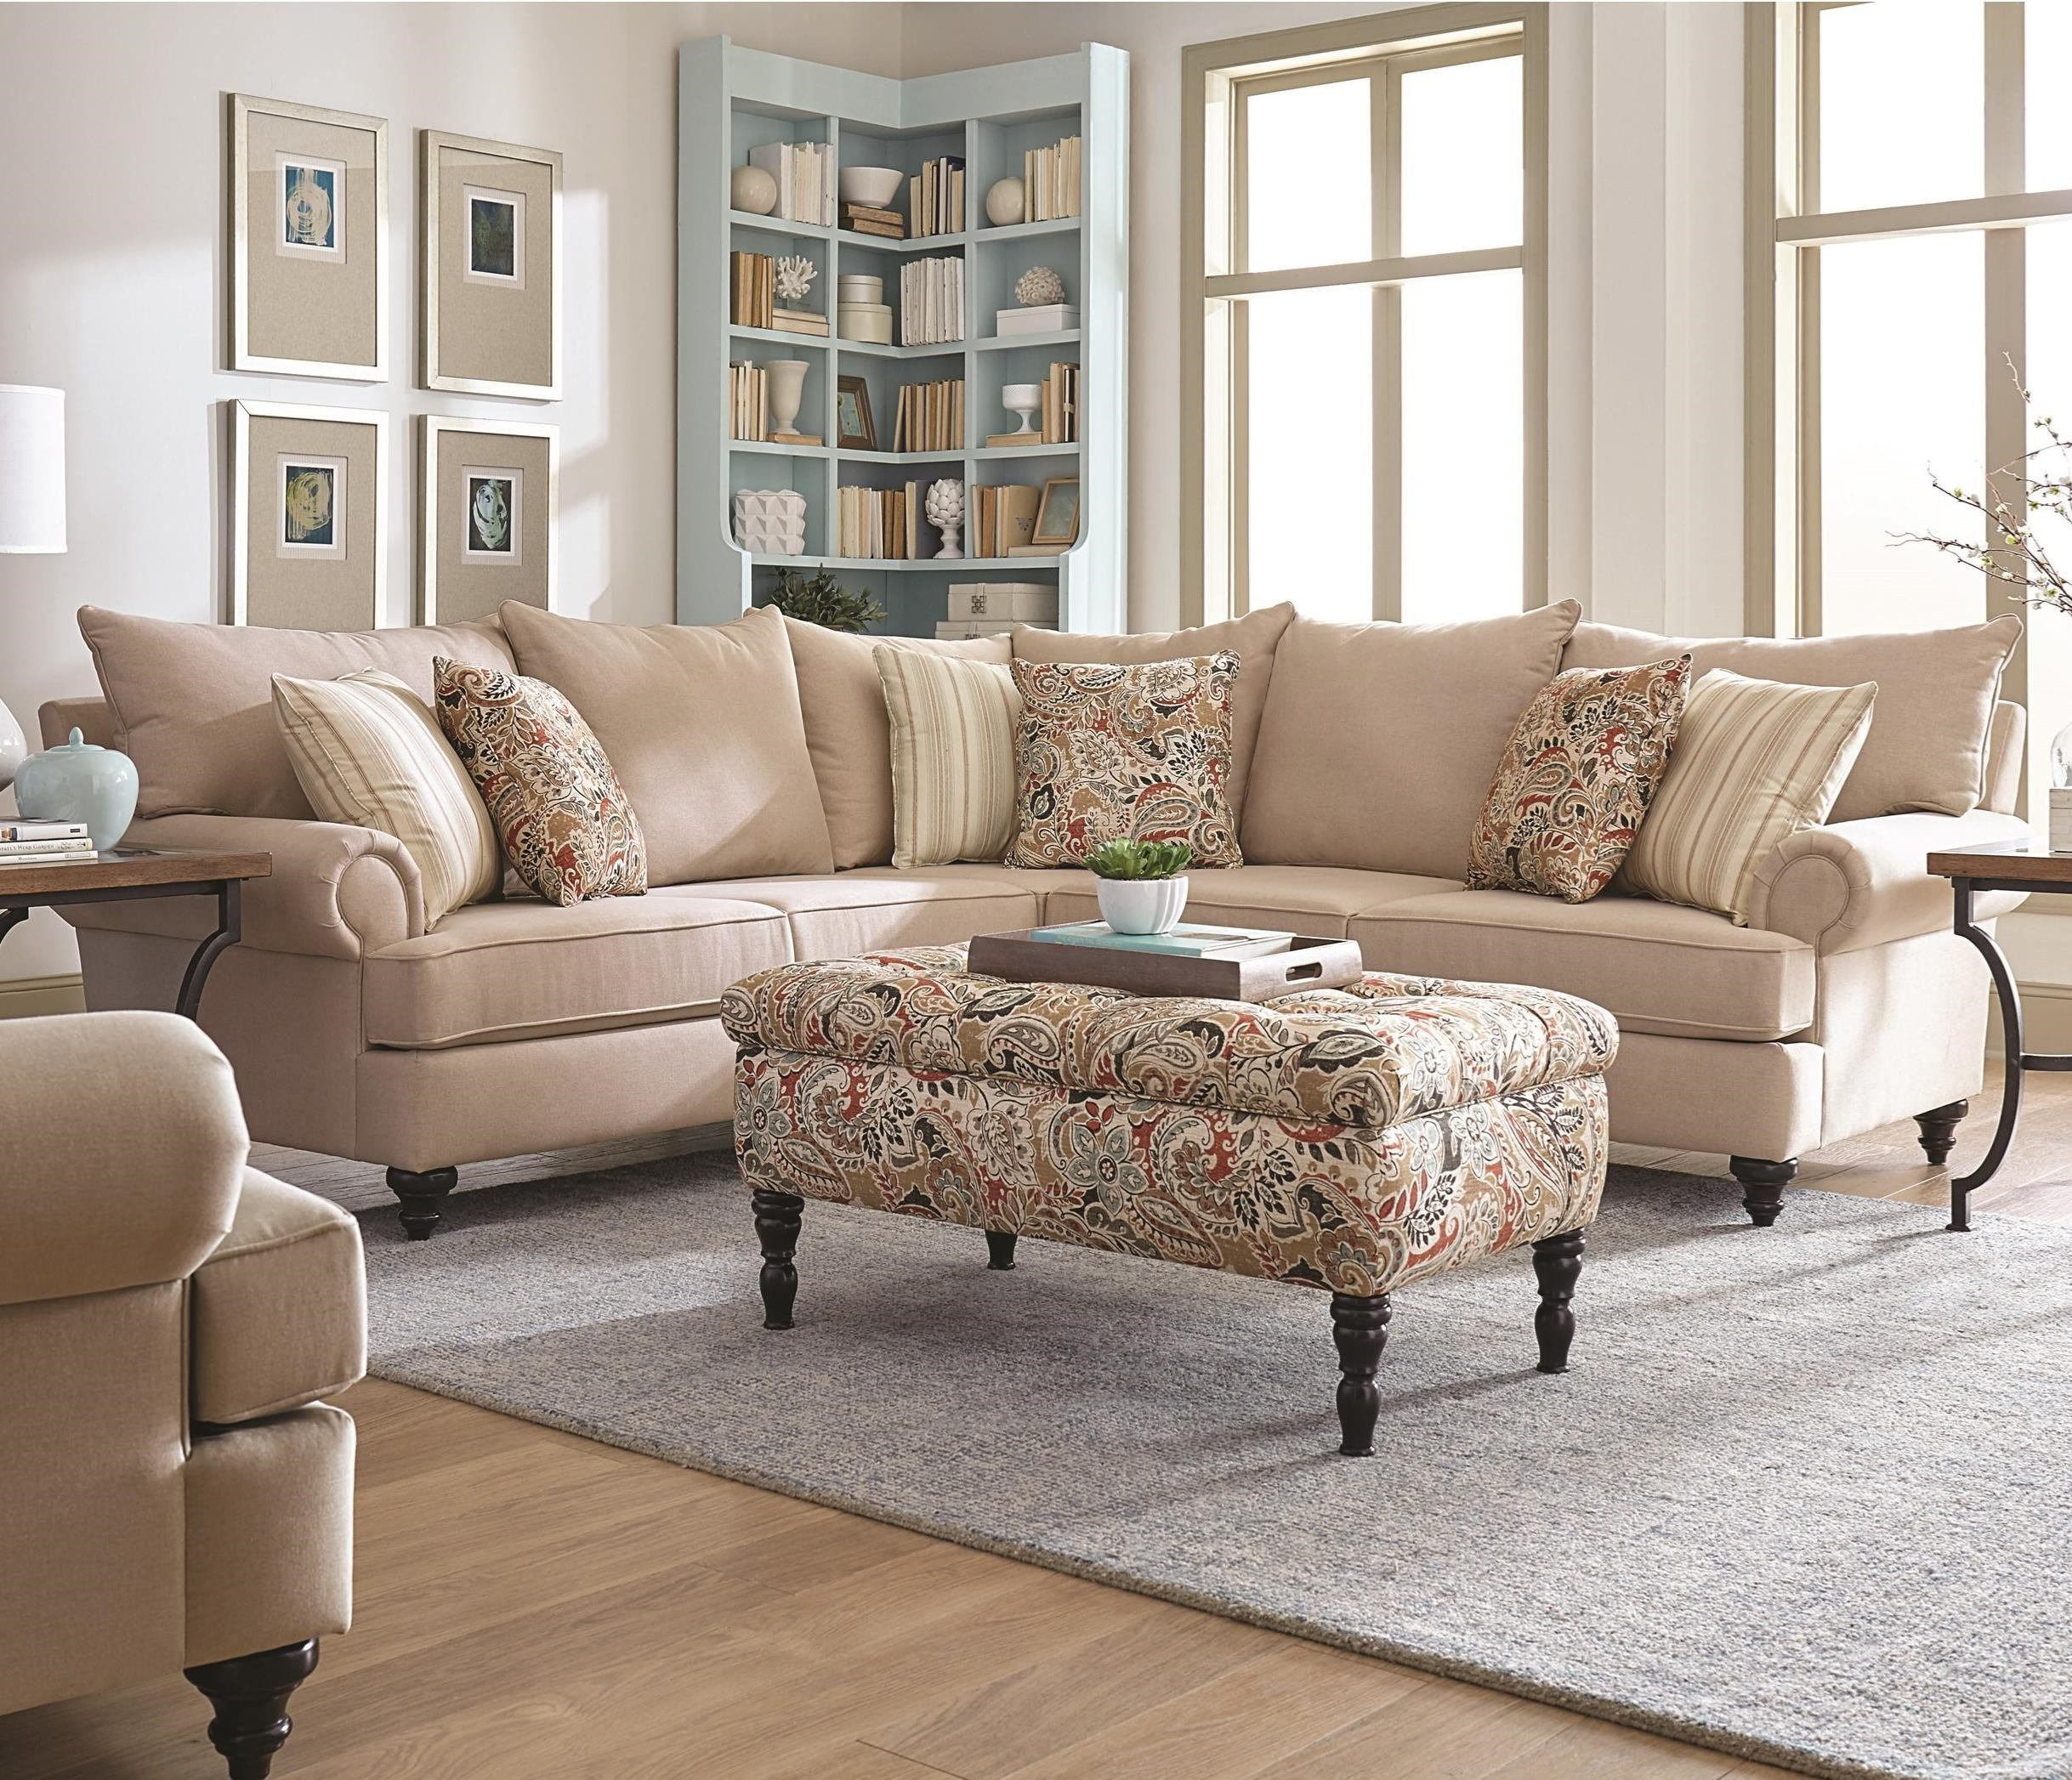 England Rosalie Sectional Sofa : england sectionals - Sectionals, Sofas & Couches